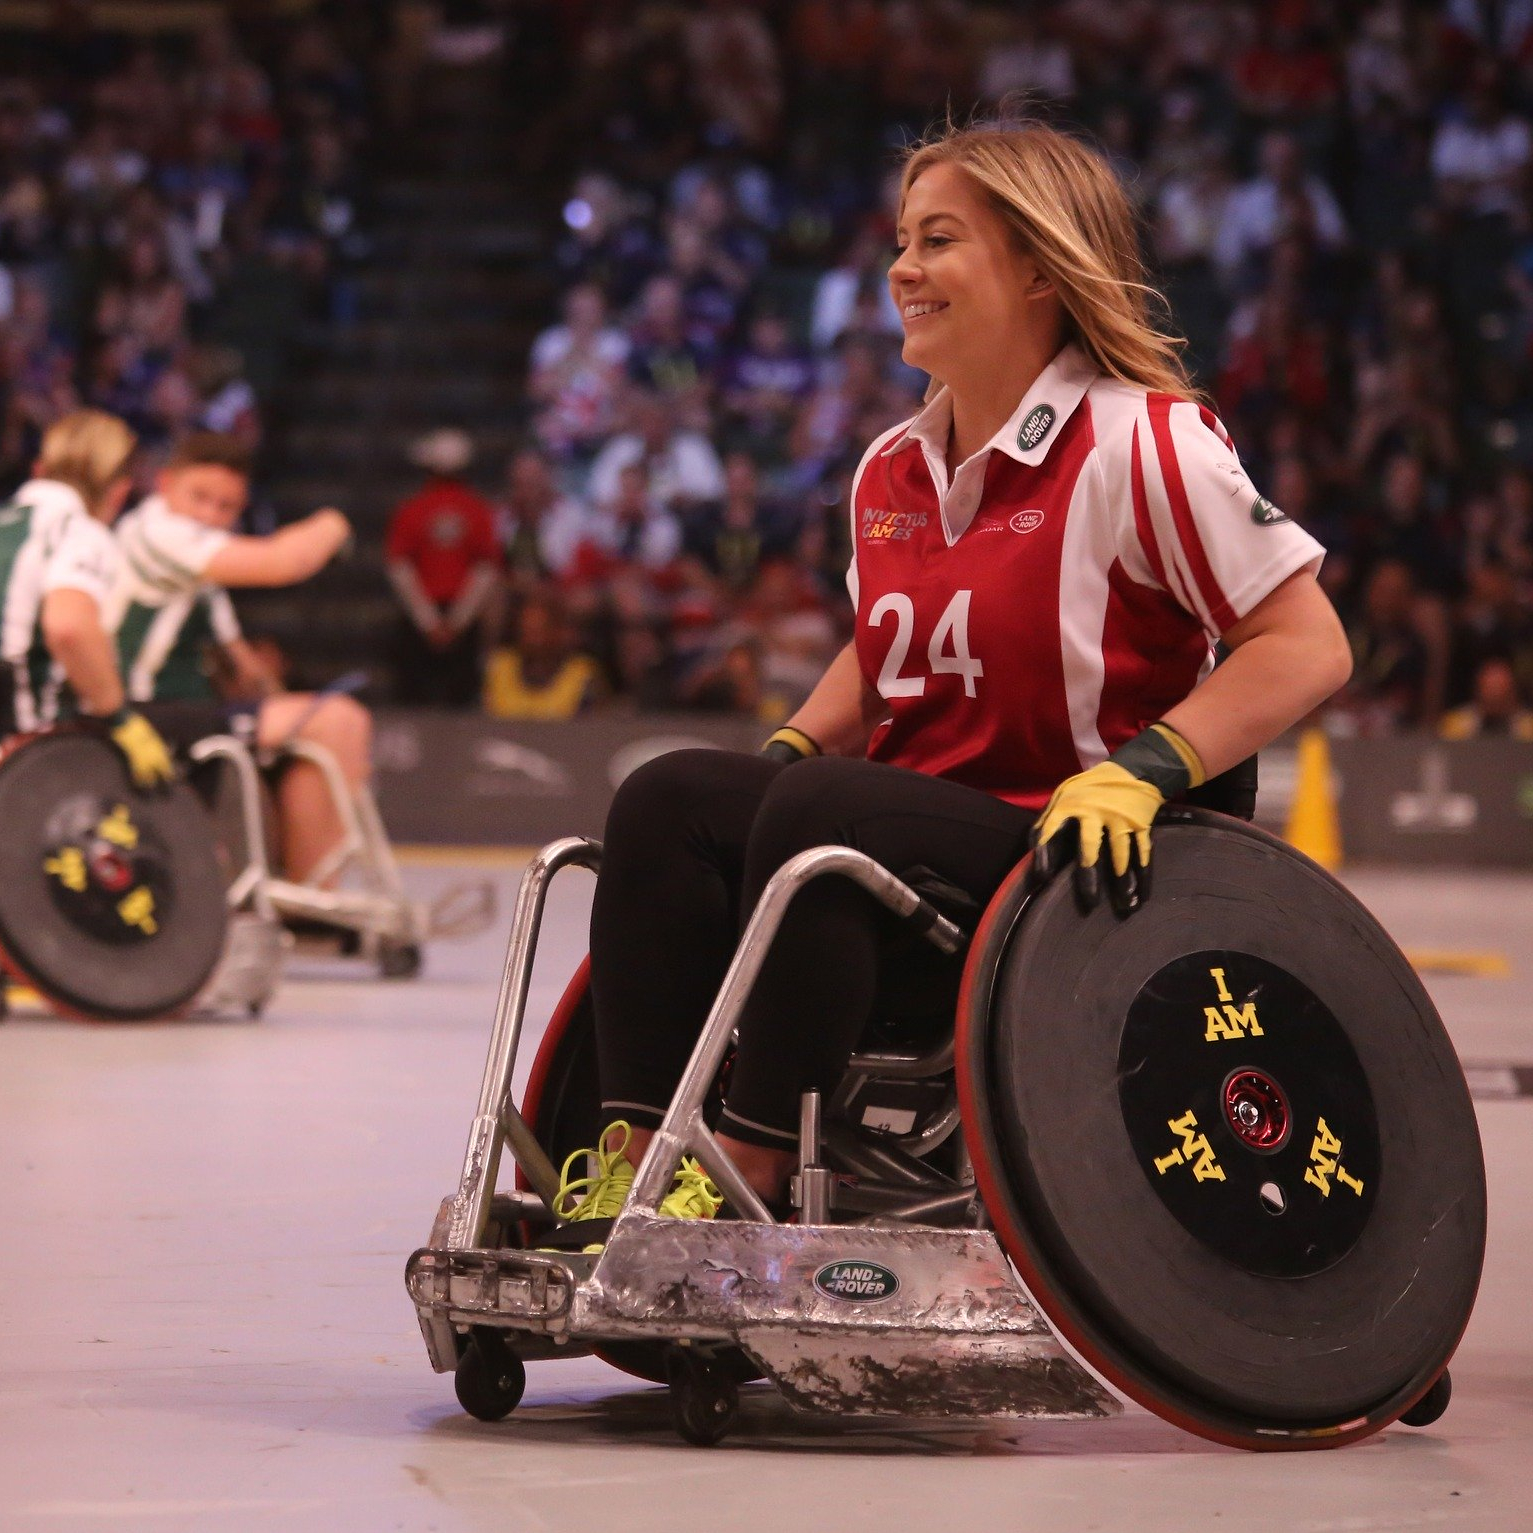 Sports person in wheelchair